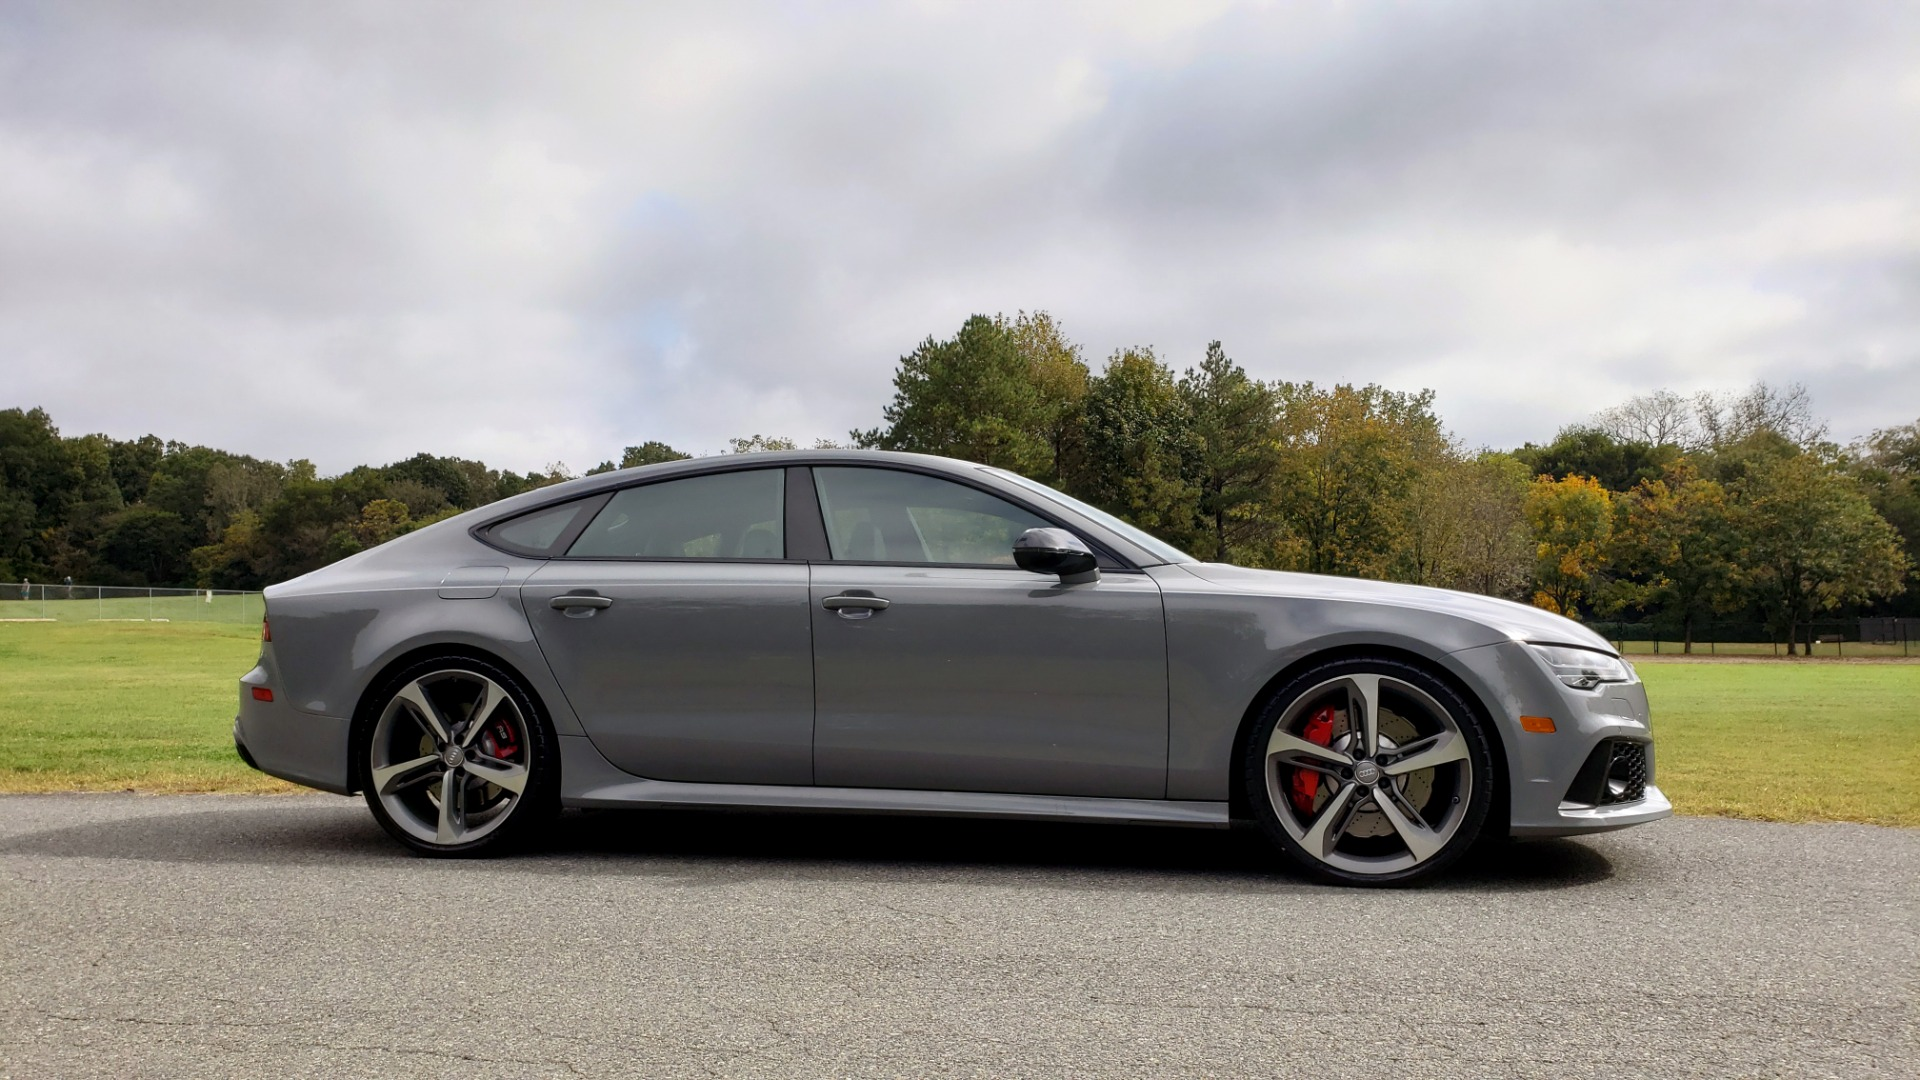 Used 2018 Audi RS 7 4.0T TIPTRONIC / CARBON OPTIC / DRVR ASST / NAV / REARVIEW for sale $91,625 at Formula One Imports in Charlotte NC 28227 4